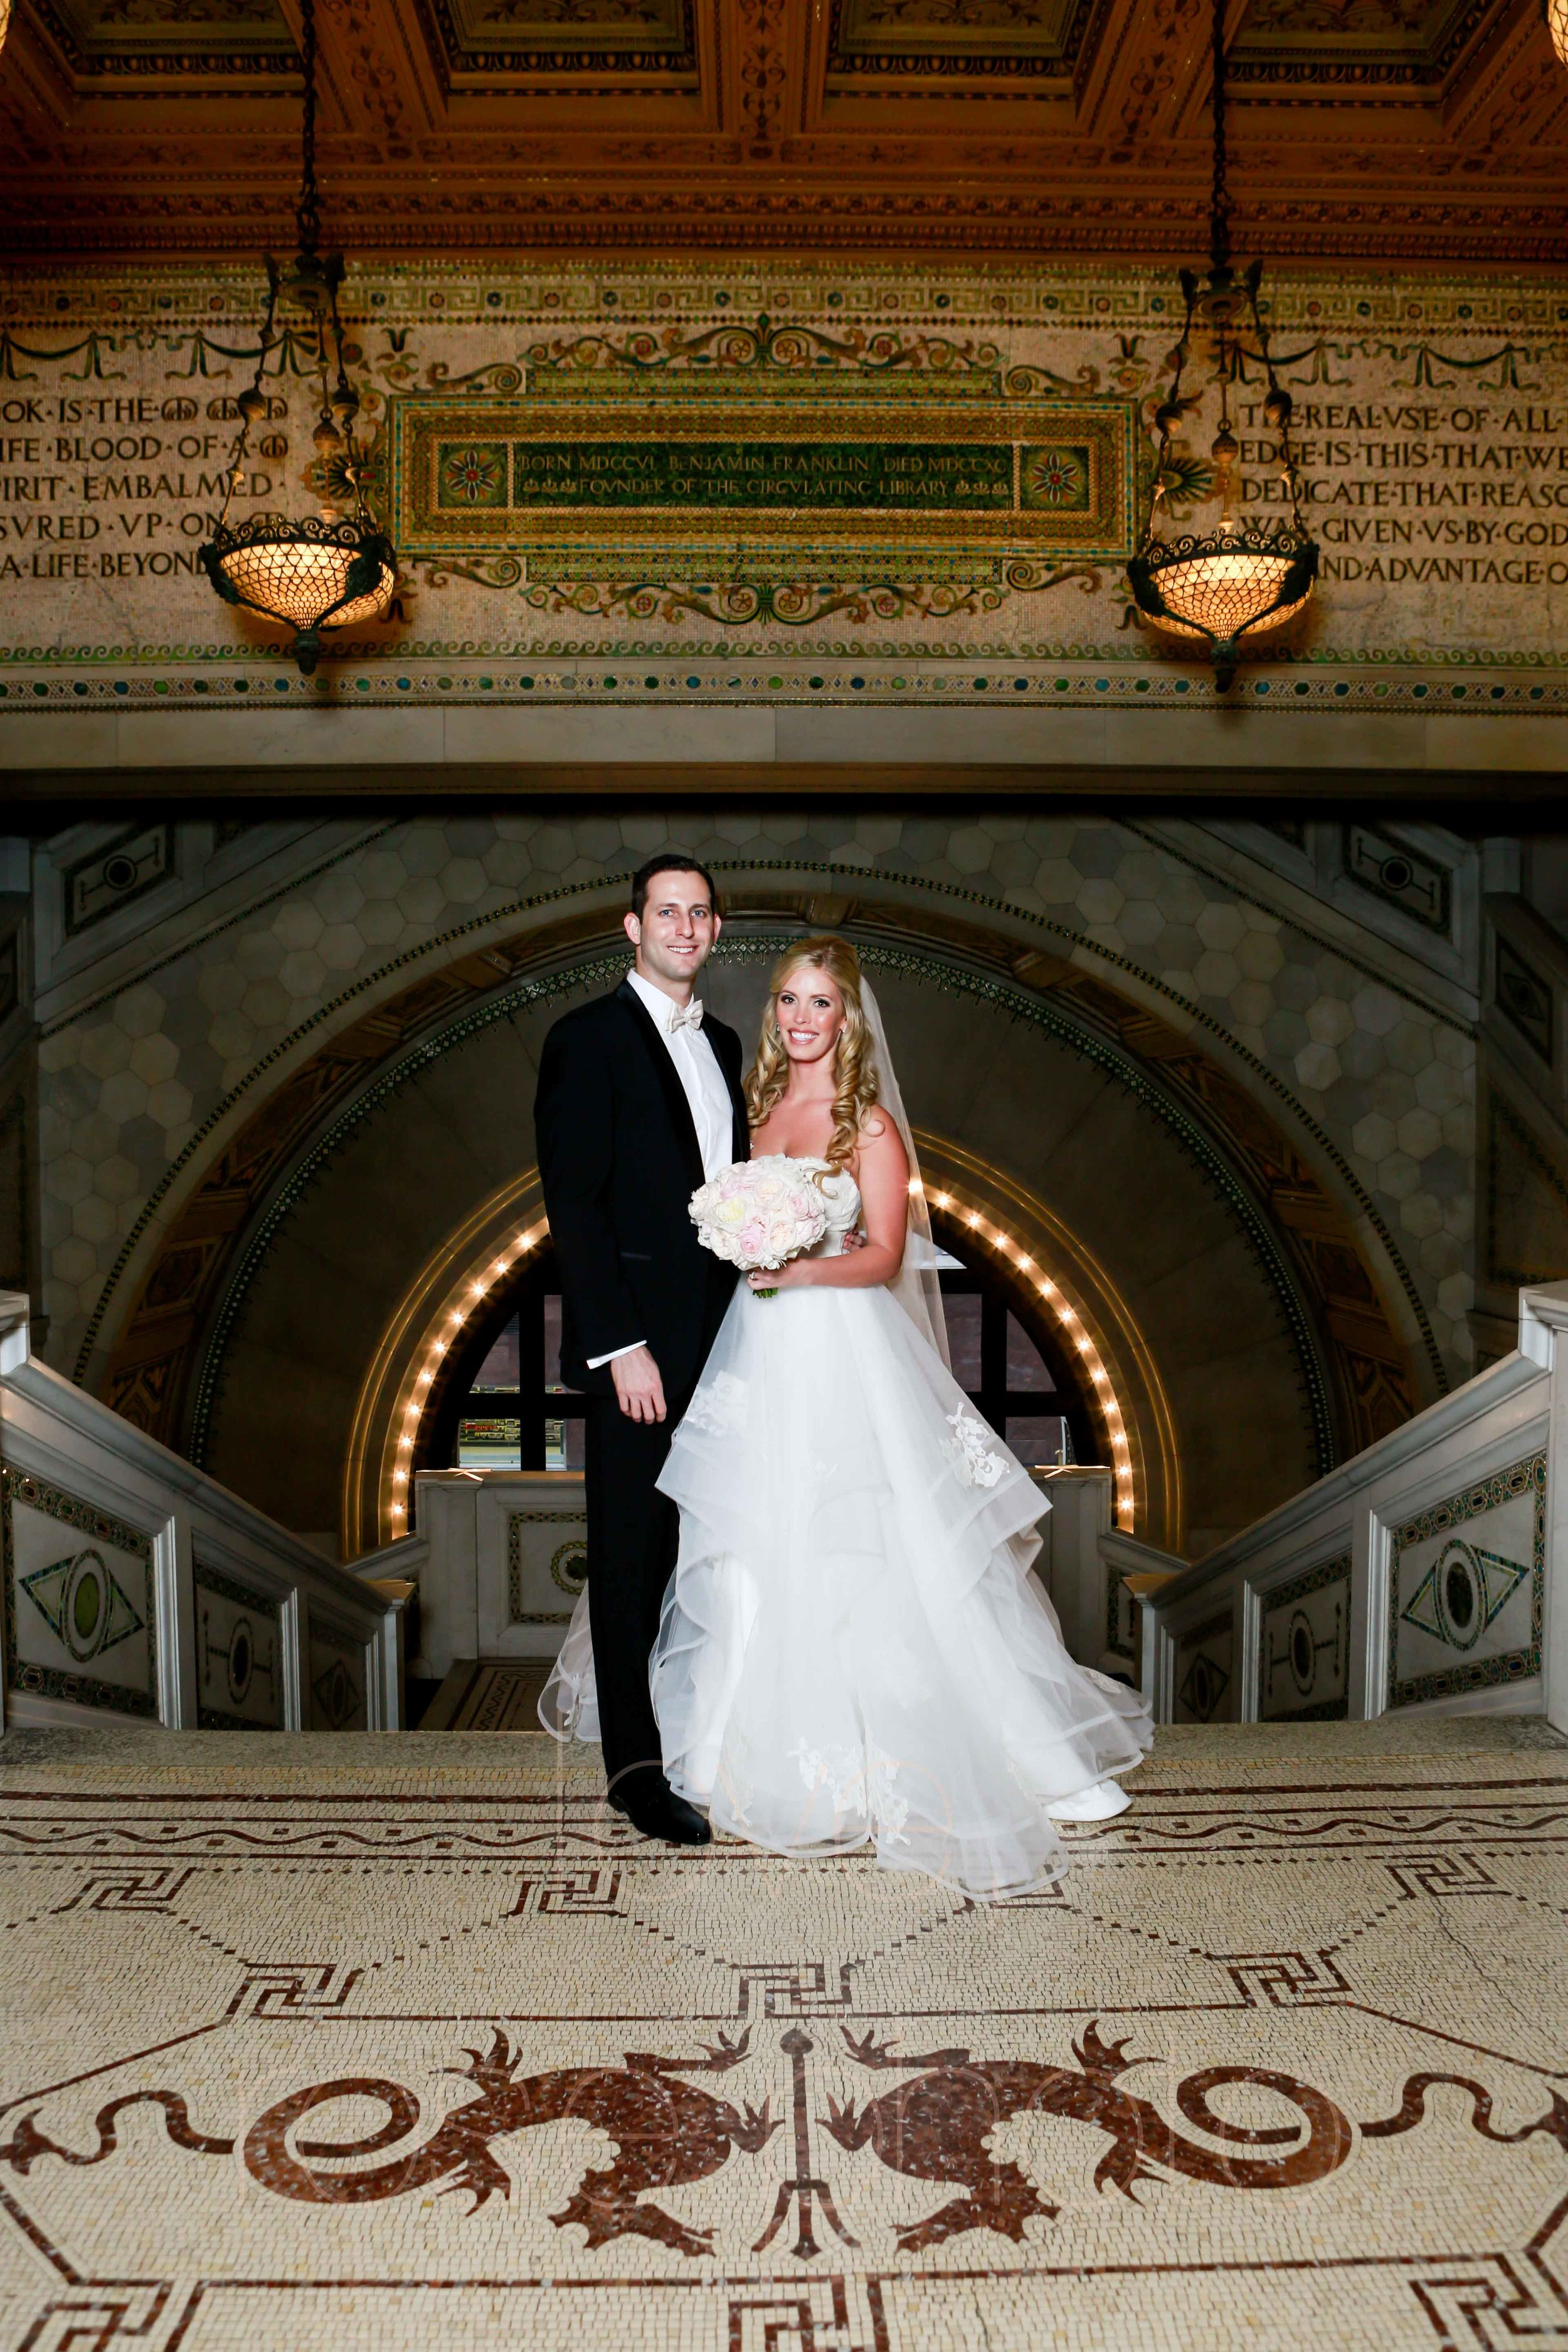 Rose Photo downtown Chicago wedding mag mile new years eve best wedding photography-21.jpg